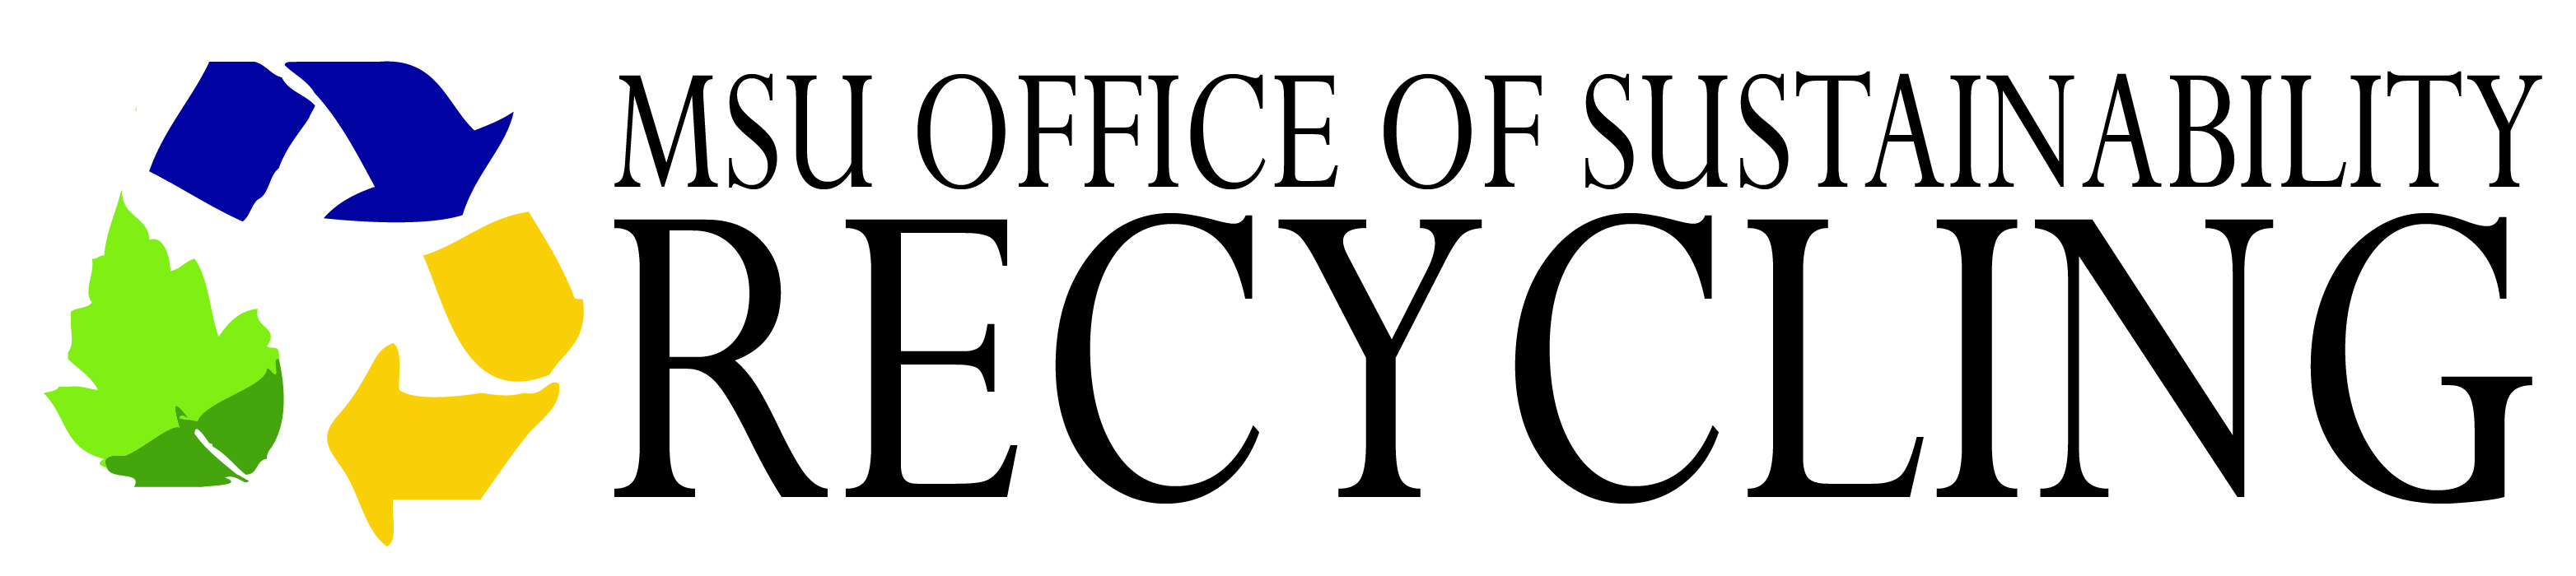 Office Recycling Logo